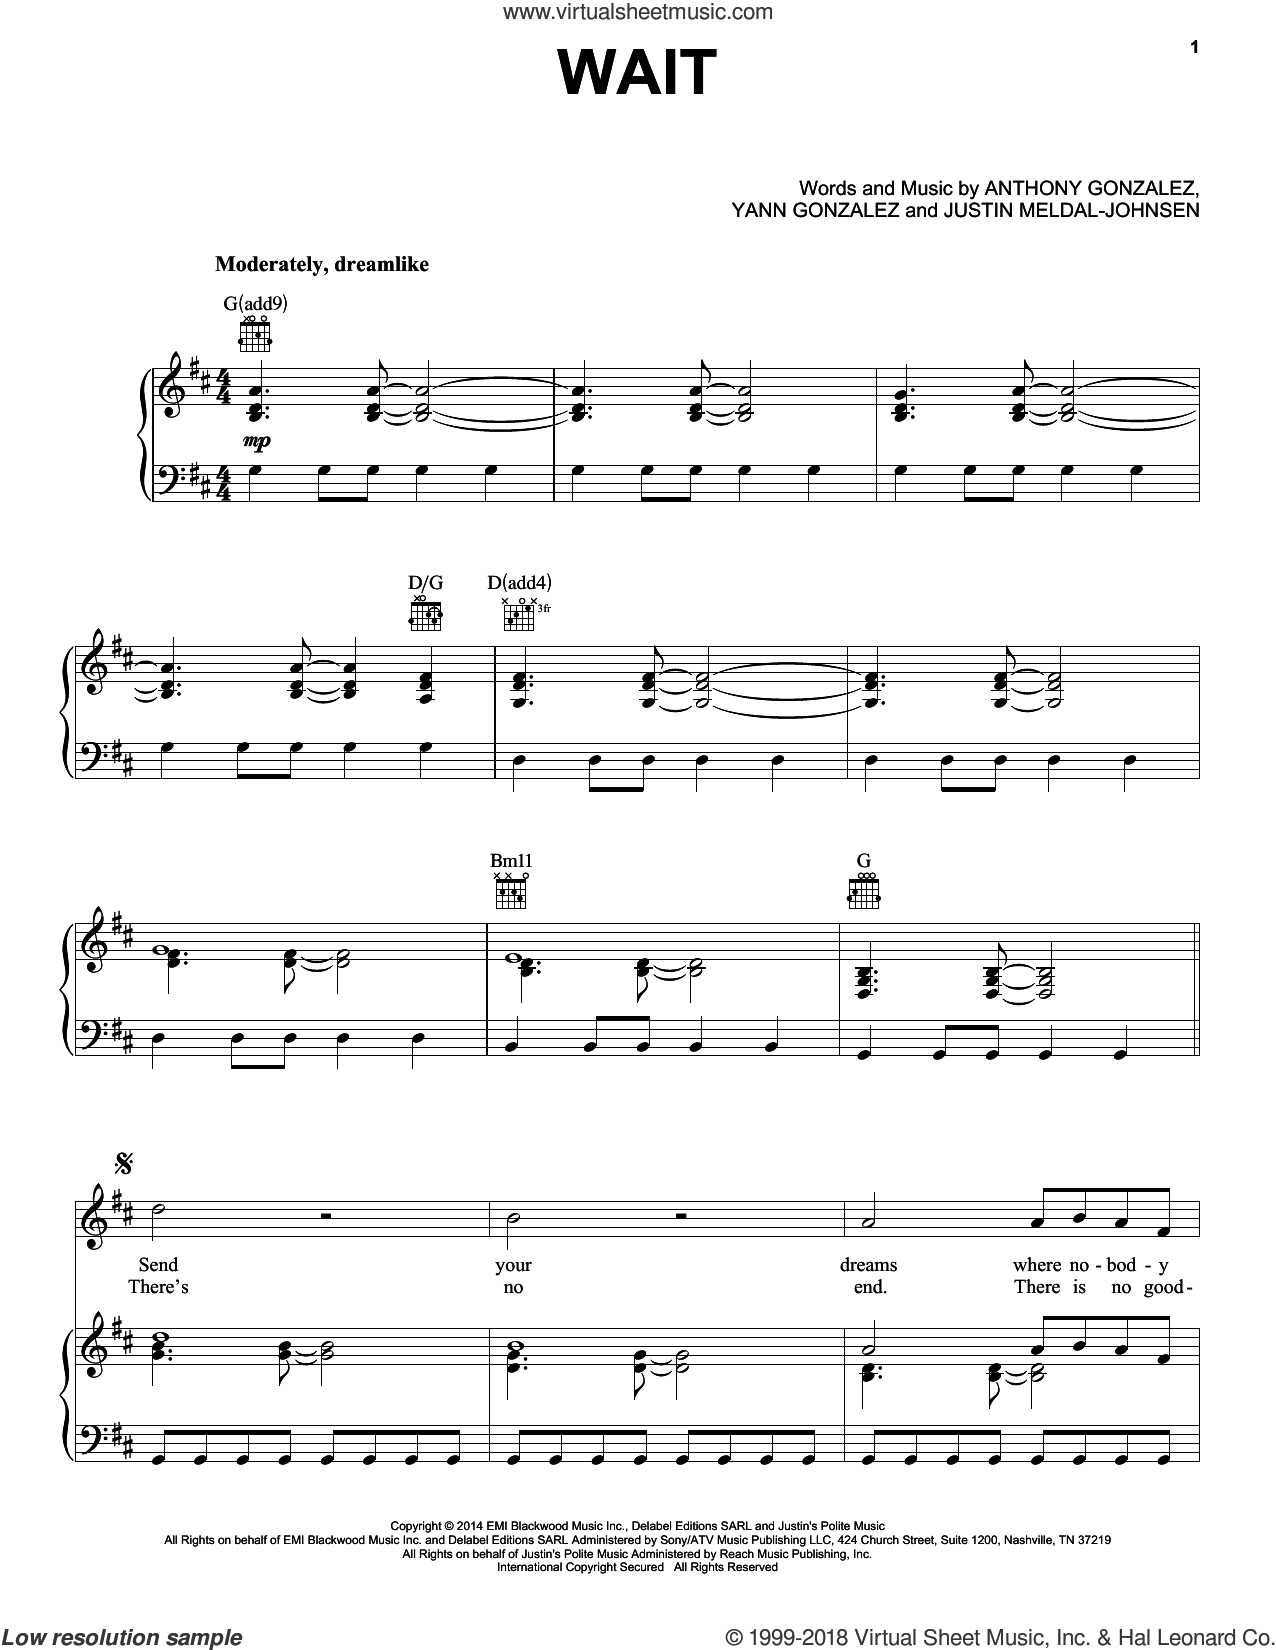 Wait sheet music for voice, piano or guitar by M83, Anthony Gonzalez, Justin Meldal-Johnsen and Yann Gonzalez, intermediate skill level